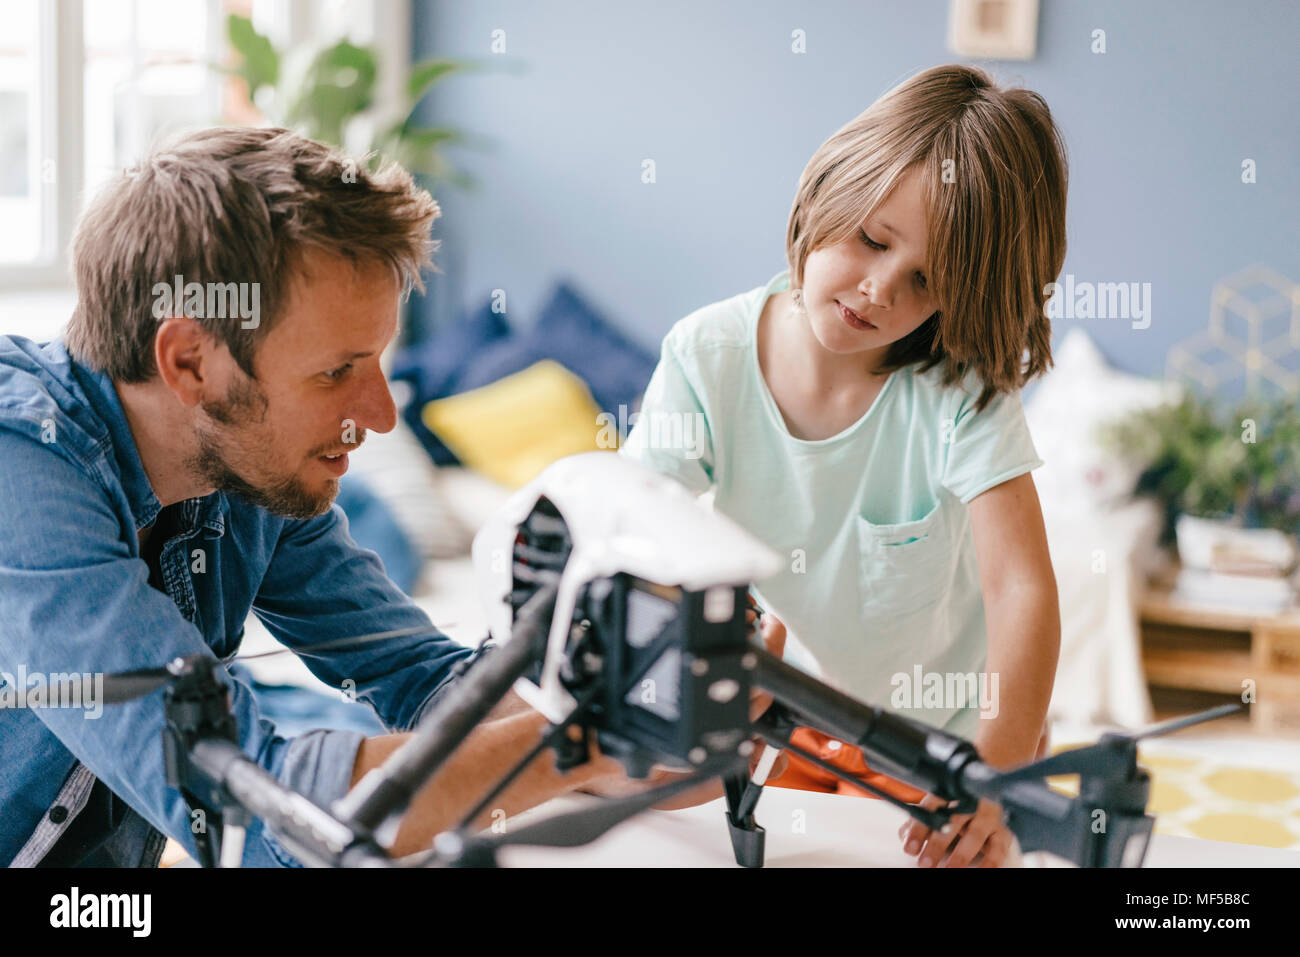 Father and son with drone at home - Stock Image